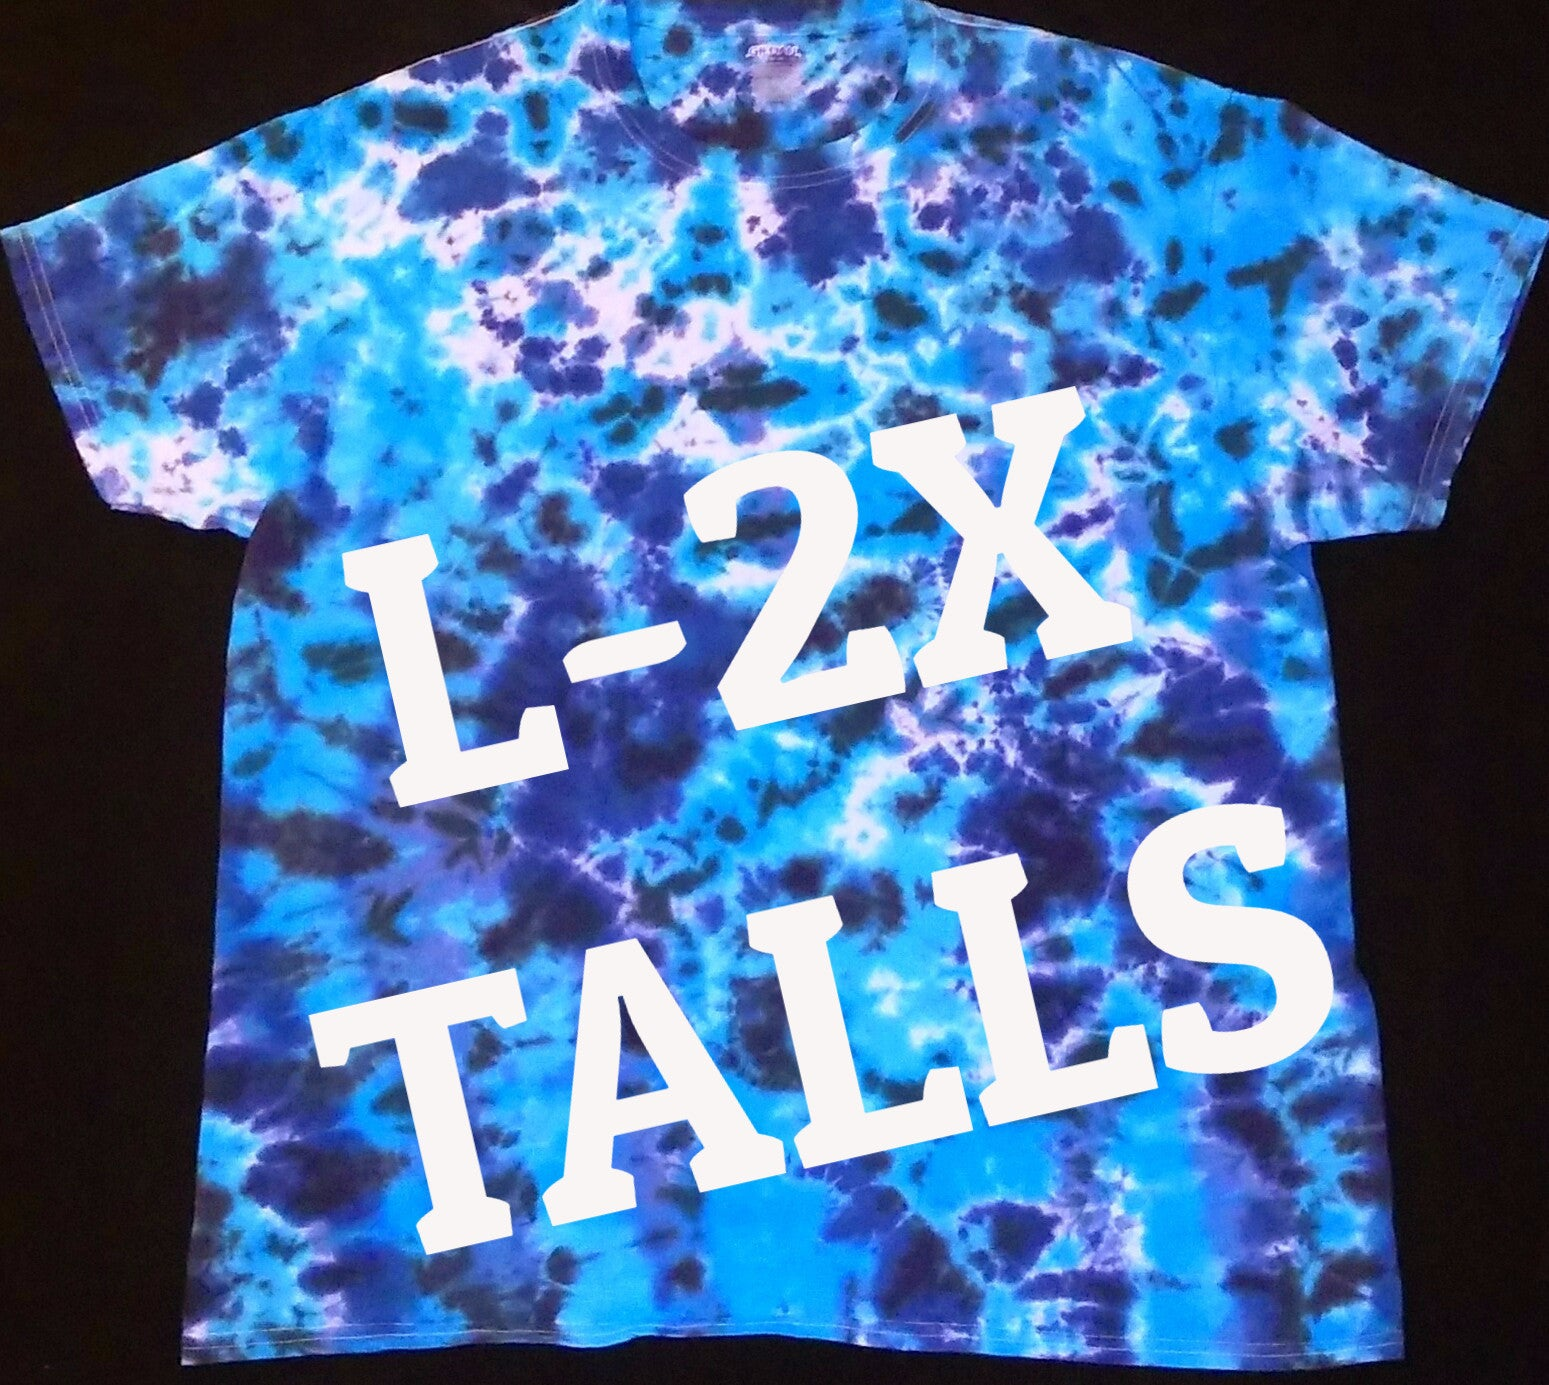 BOAT WATER TIE DYE TALL T-SHIRT